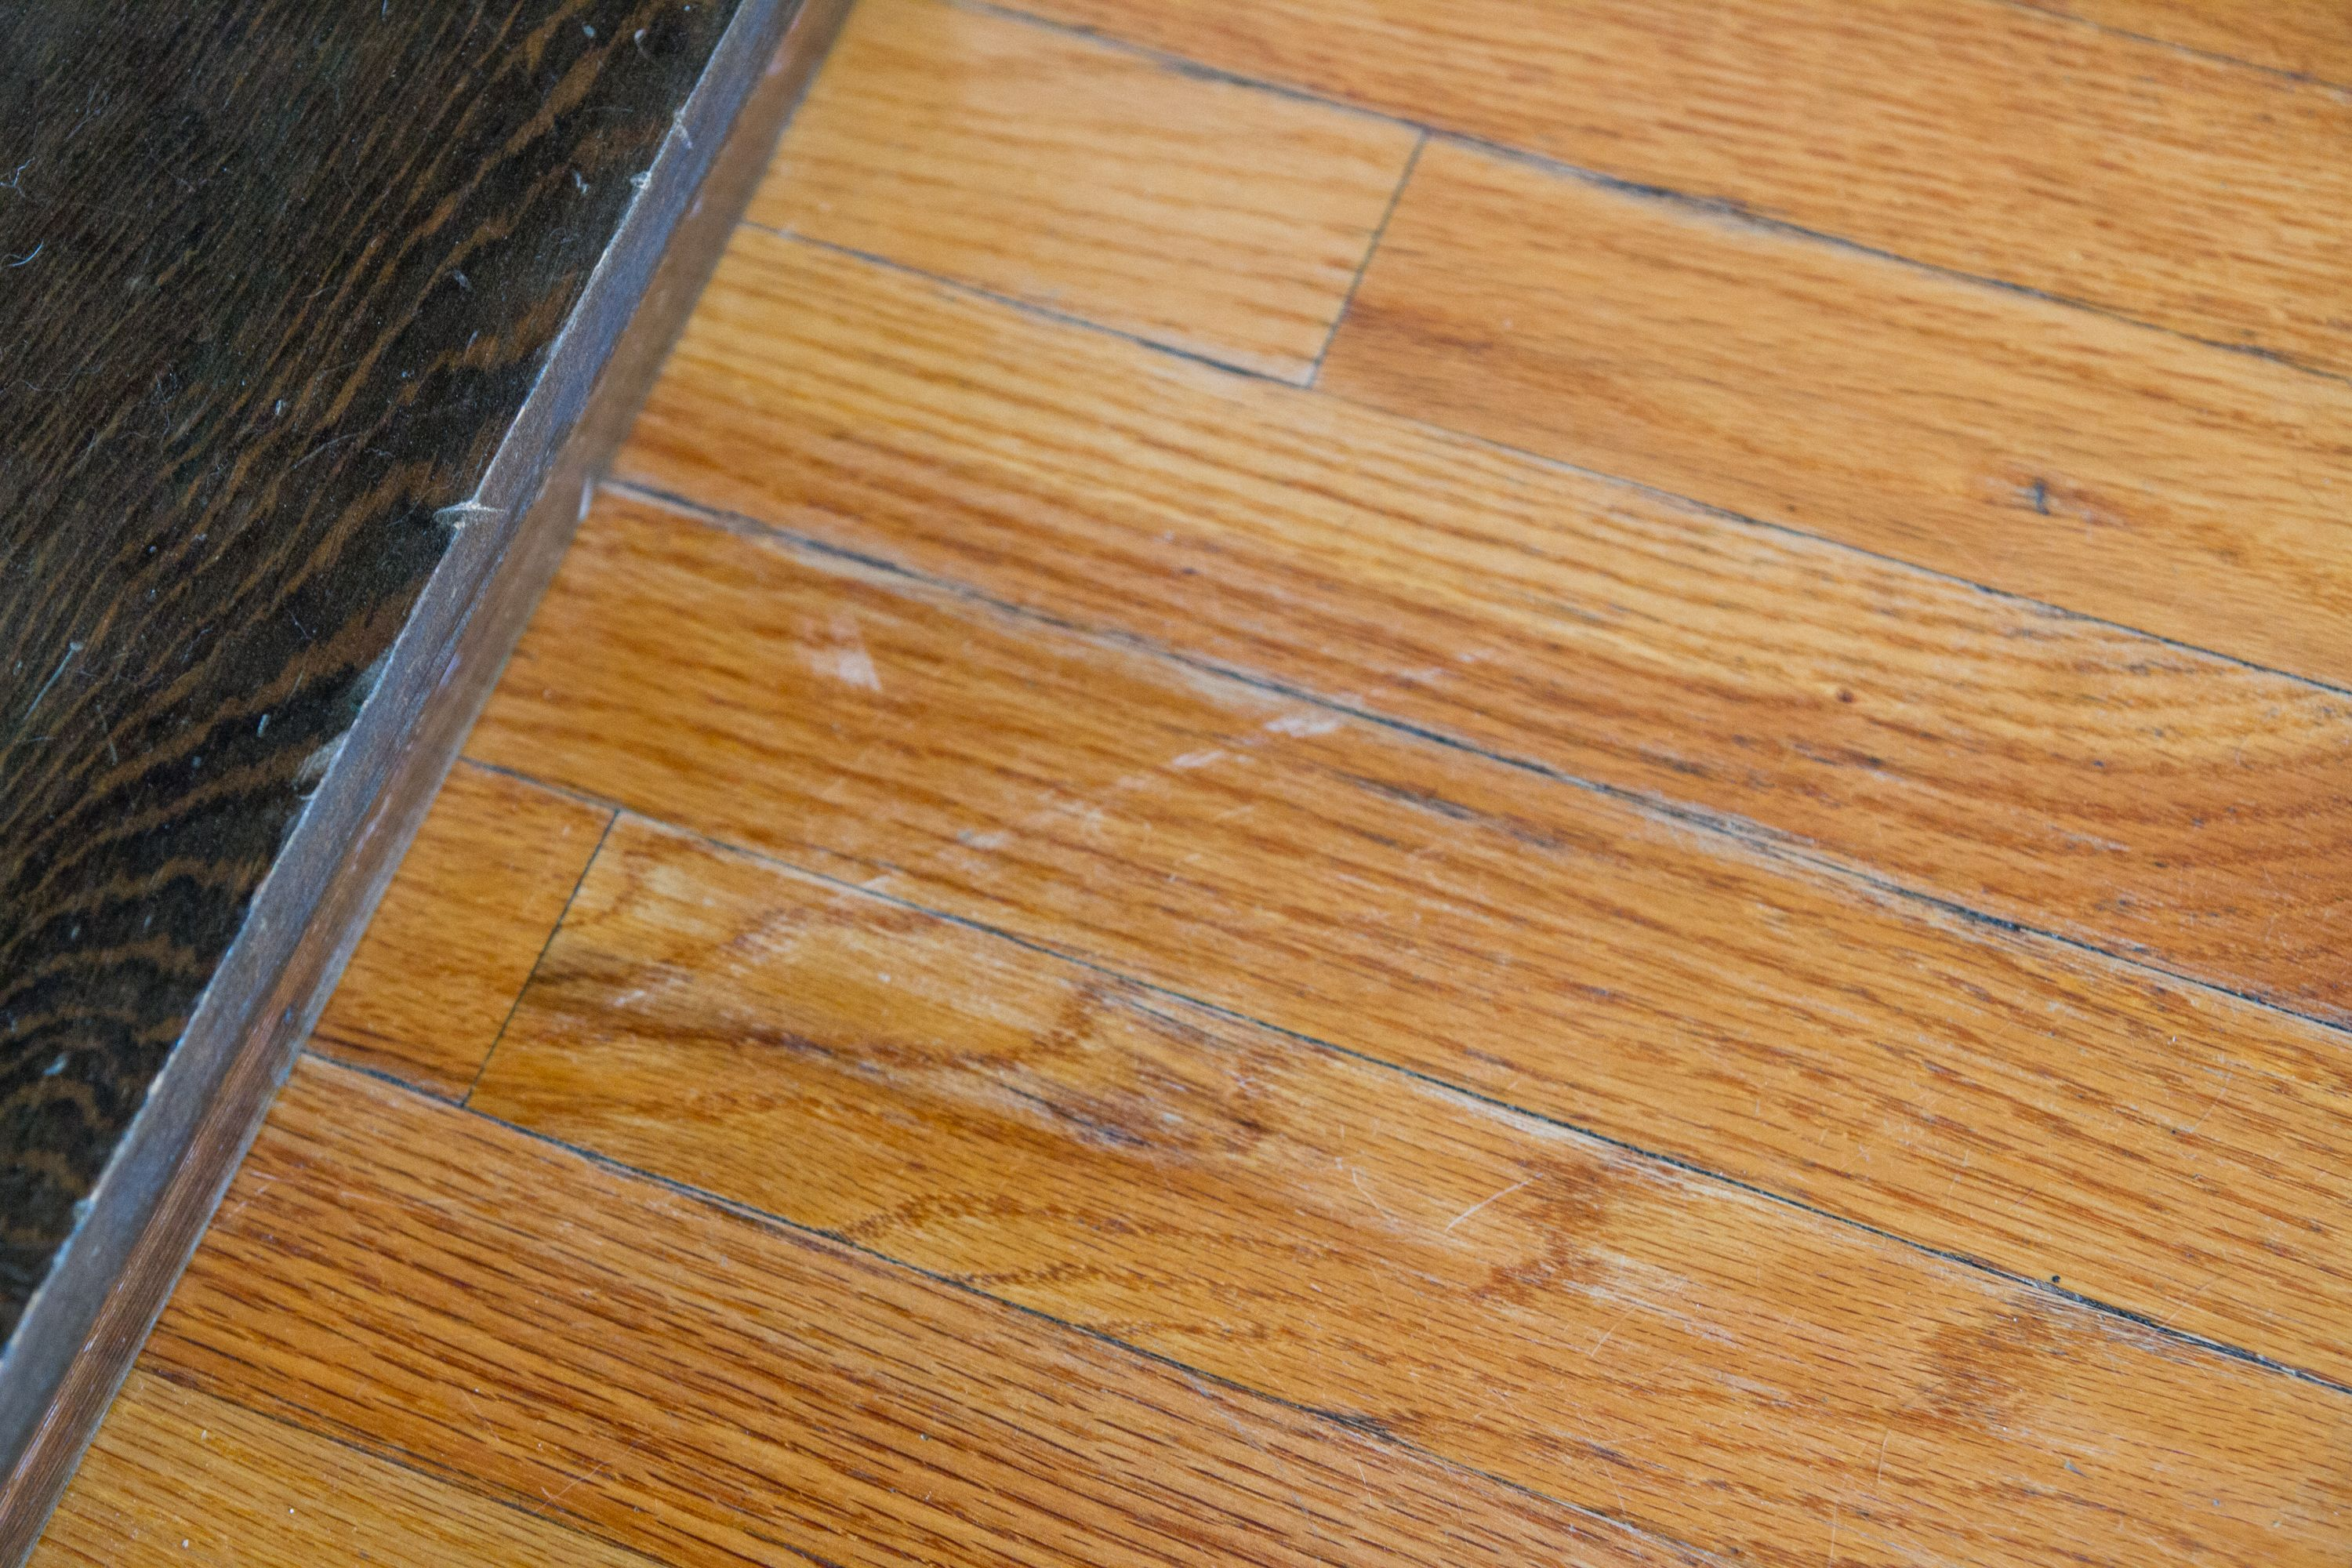 How To Fix Scratches In Hardwood Floors Cleaning Wood Floors